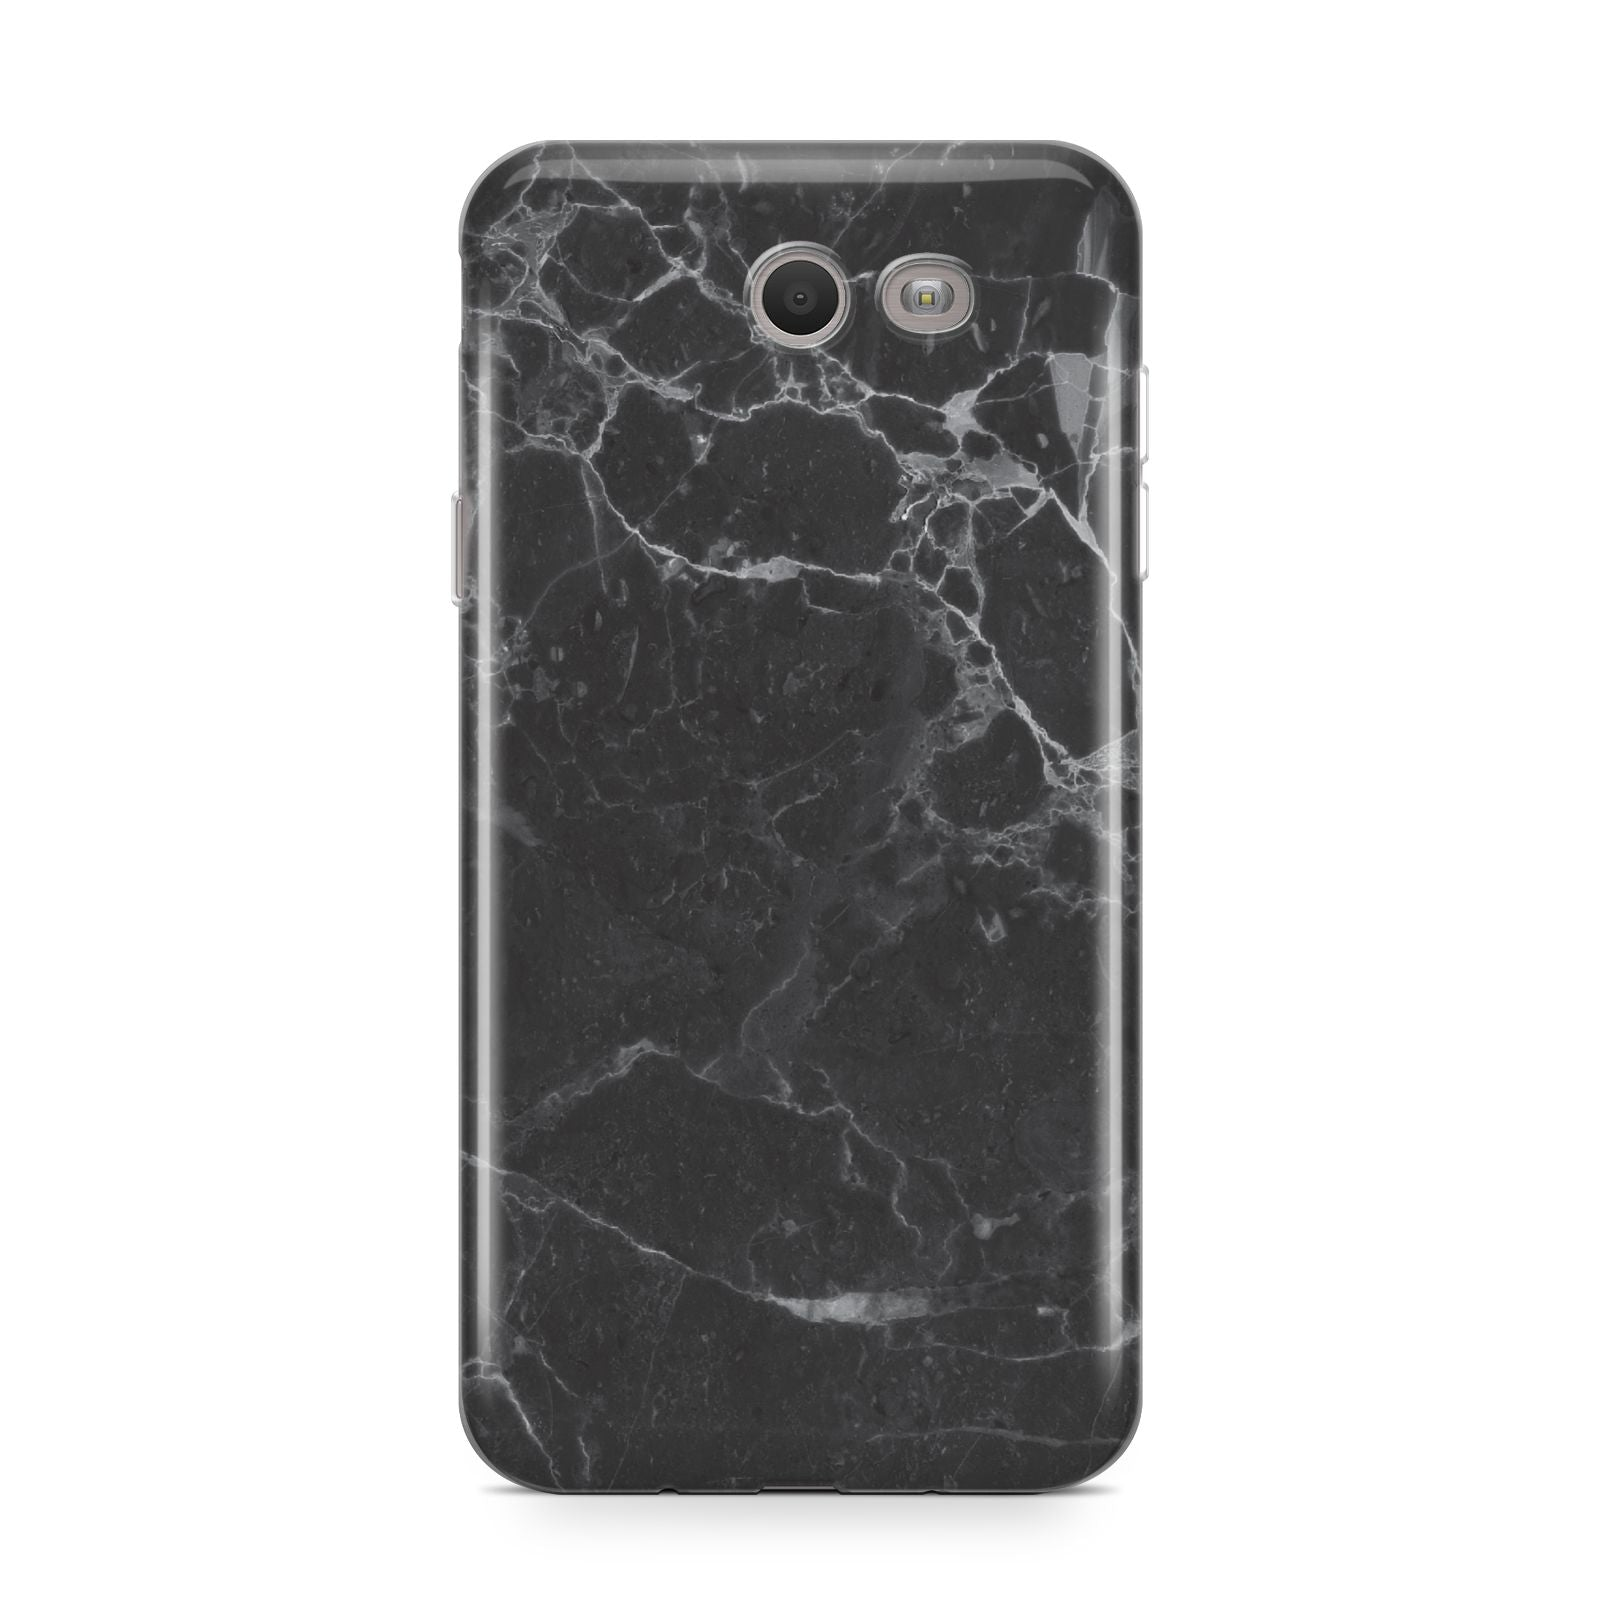 Faux Marble Effect Black Samsung Galaxy J7 2017 Case